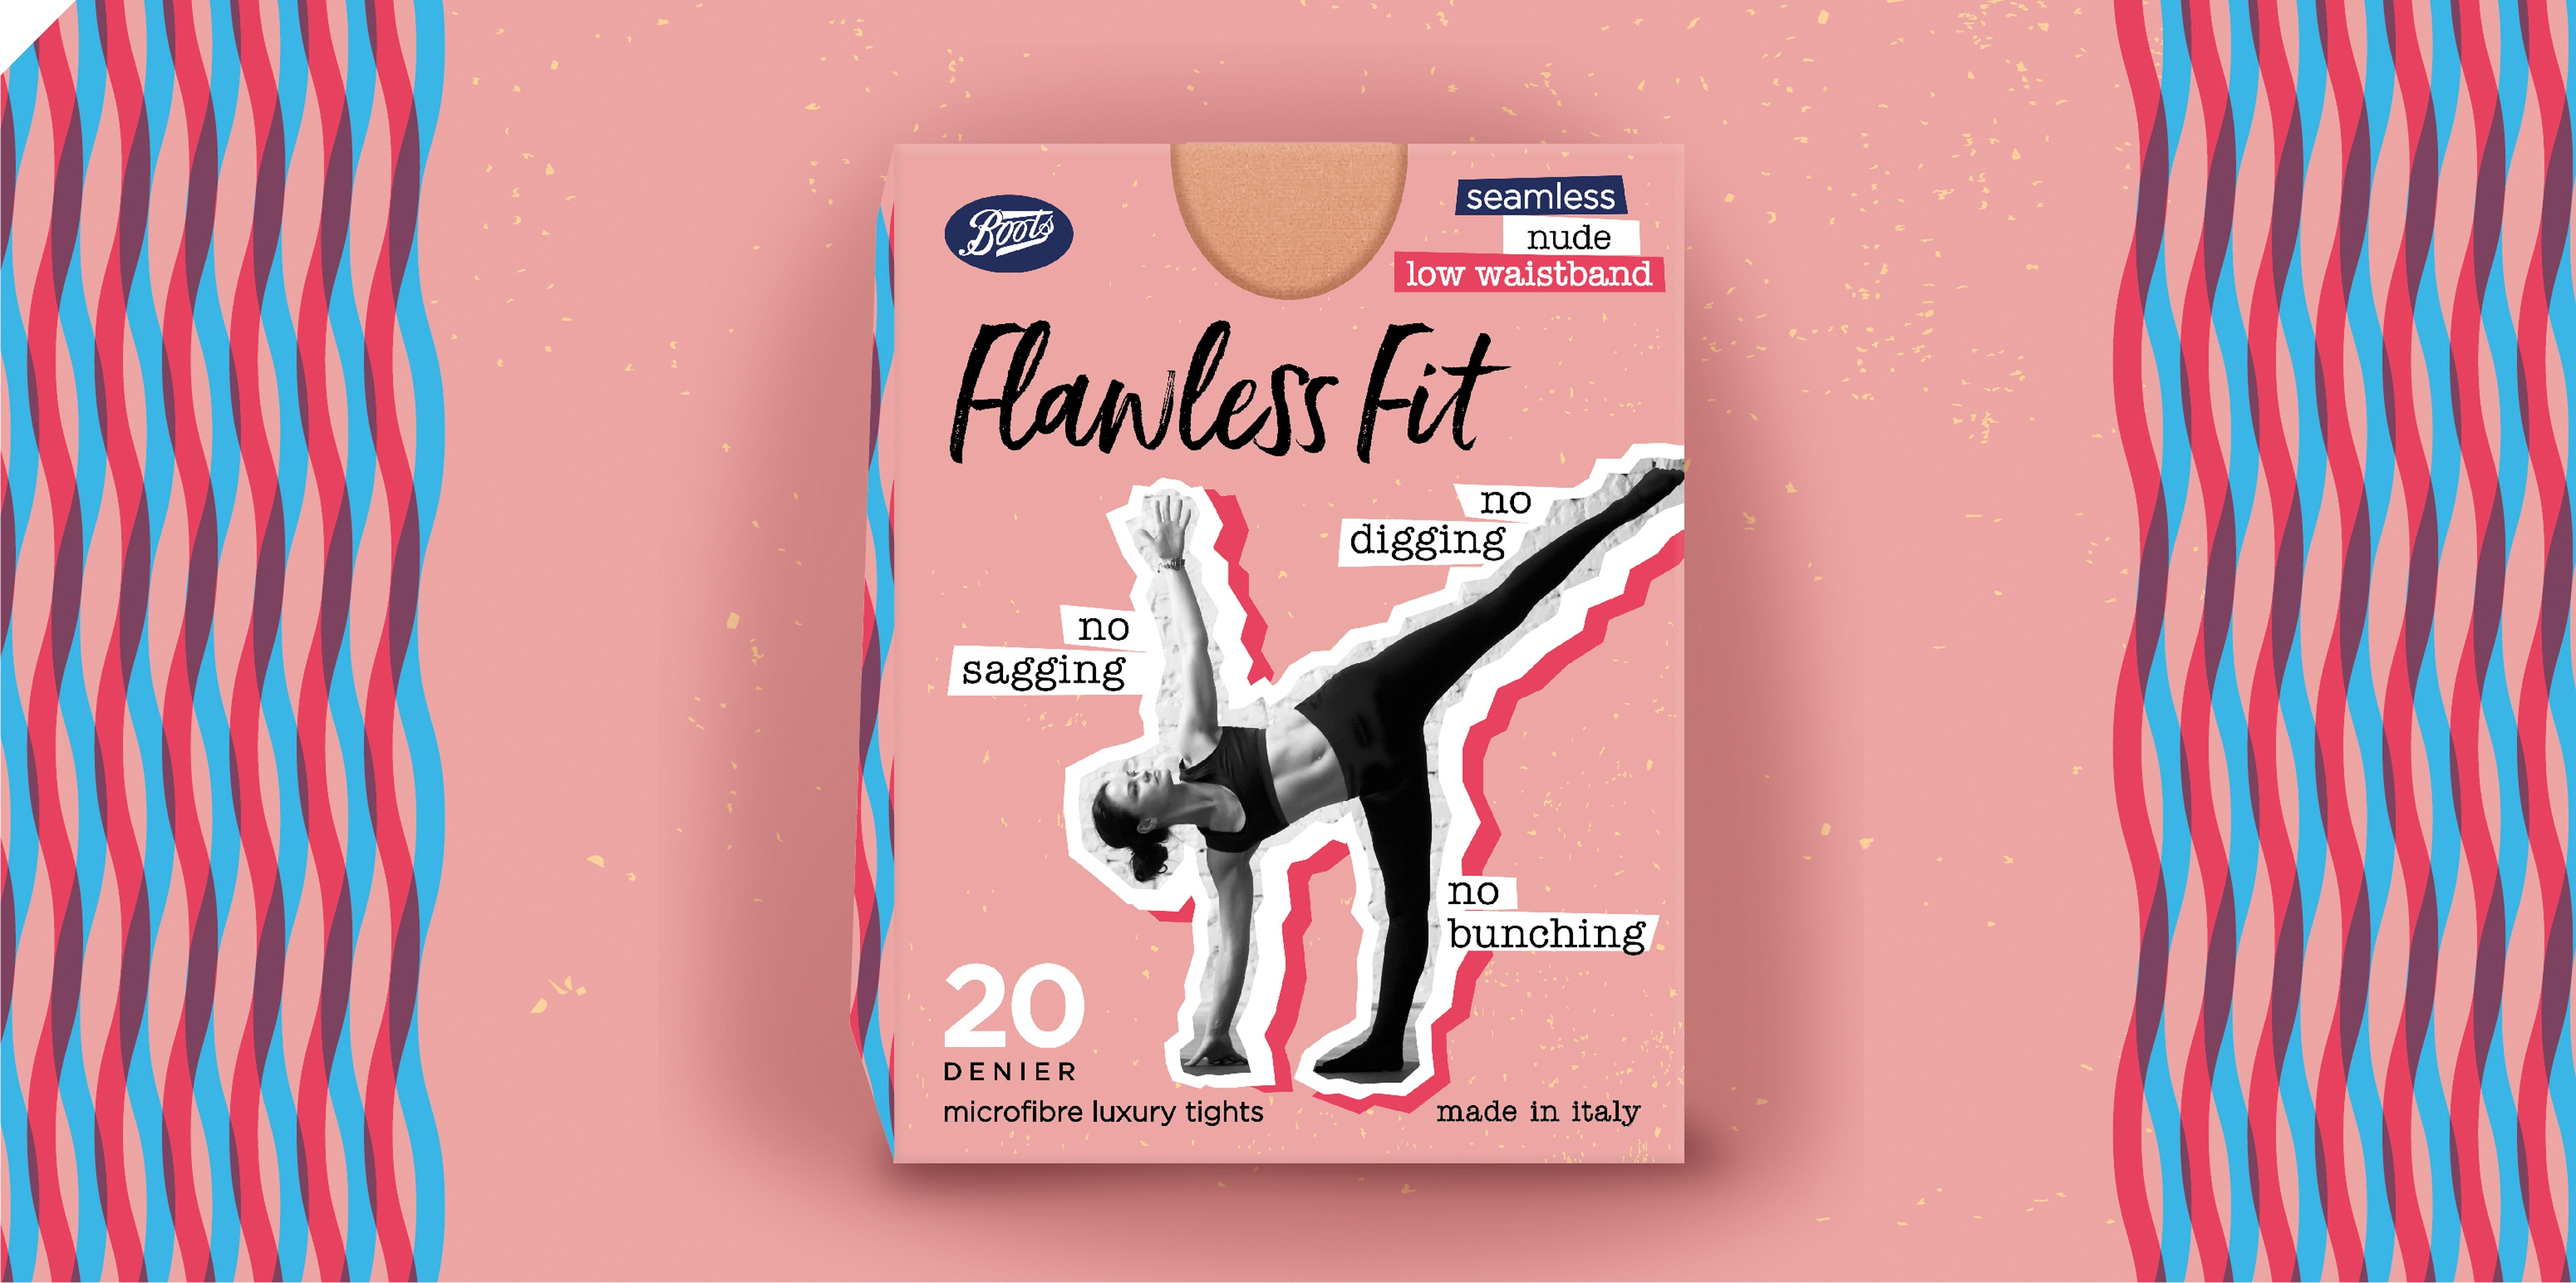 Brand on Shelf - Work - Boots - Flawless Fit Tights 20 Denier